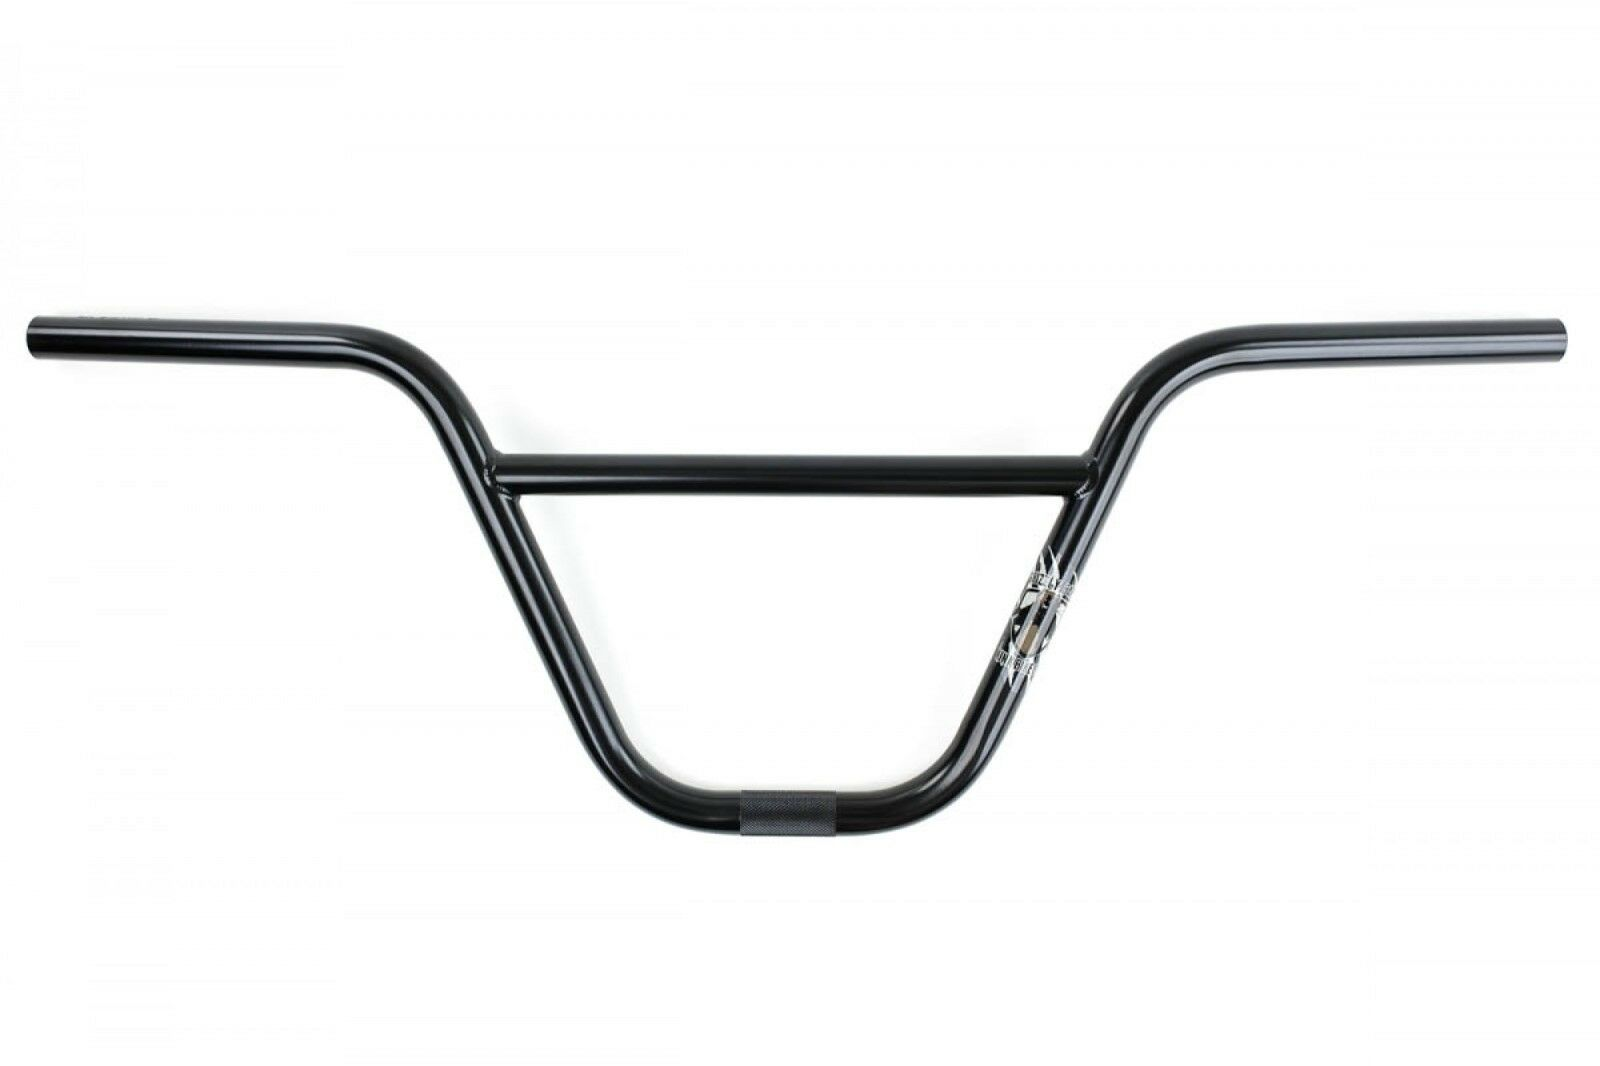 "Kink Grizzly 2pc BMX Handlebars - 9"" - Black"